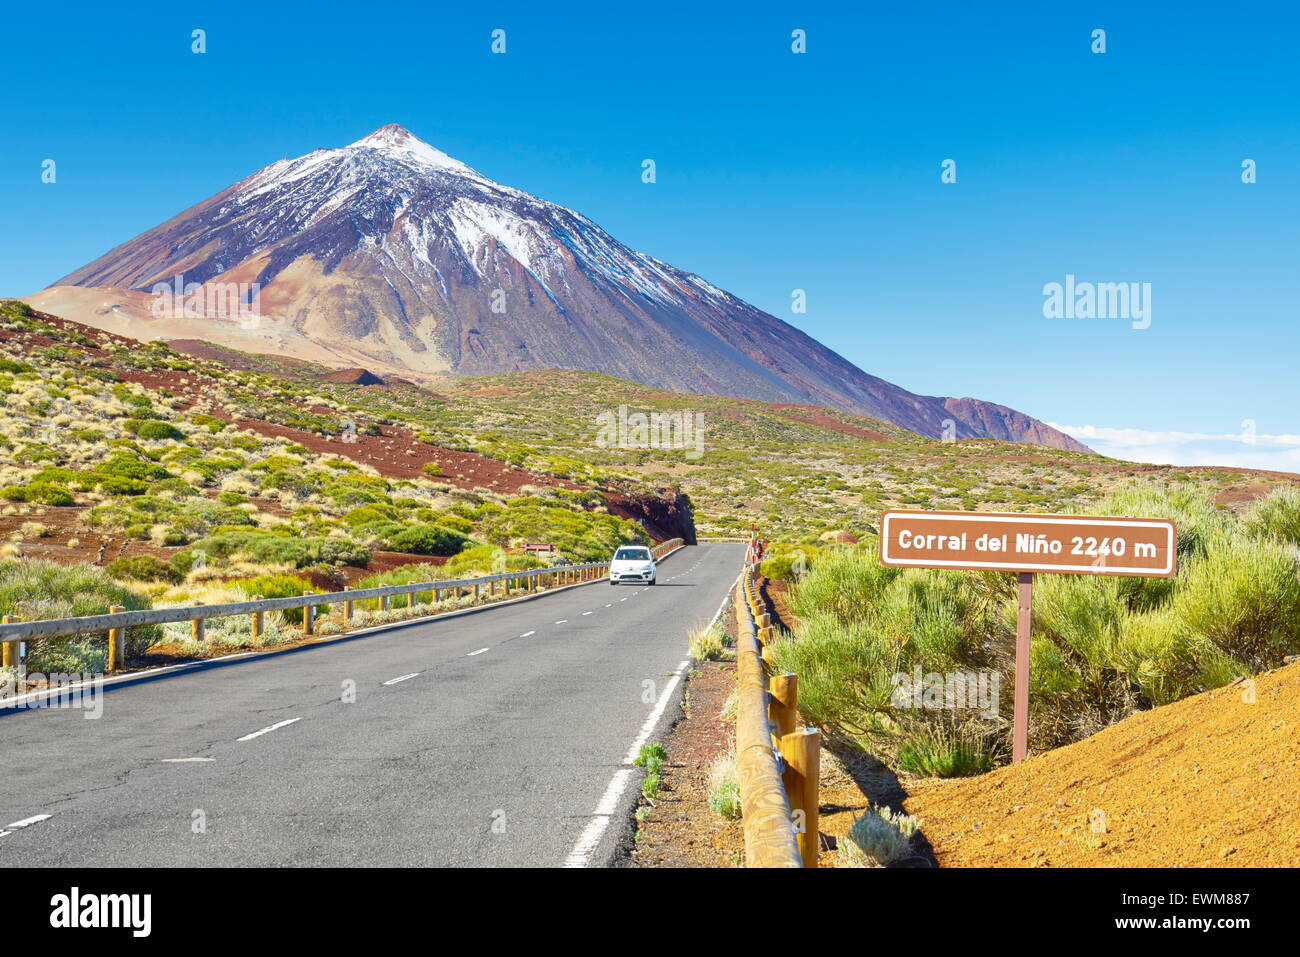 Tenerife, Canary Islands - the Road TF-24, Teide National Park, Spain - Stock Image